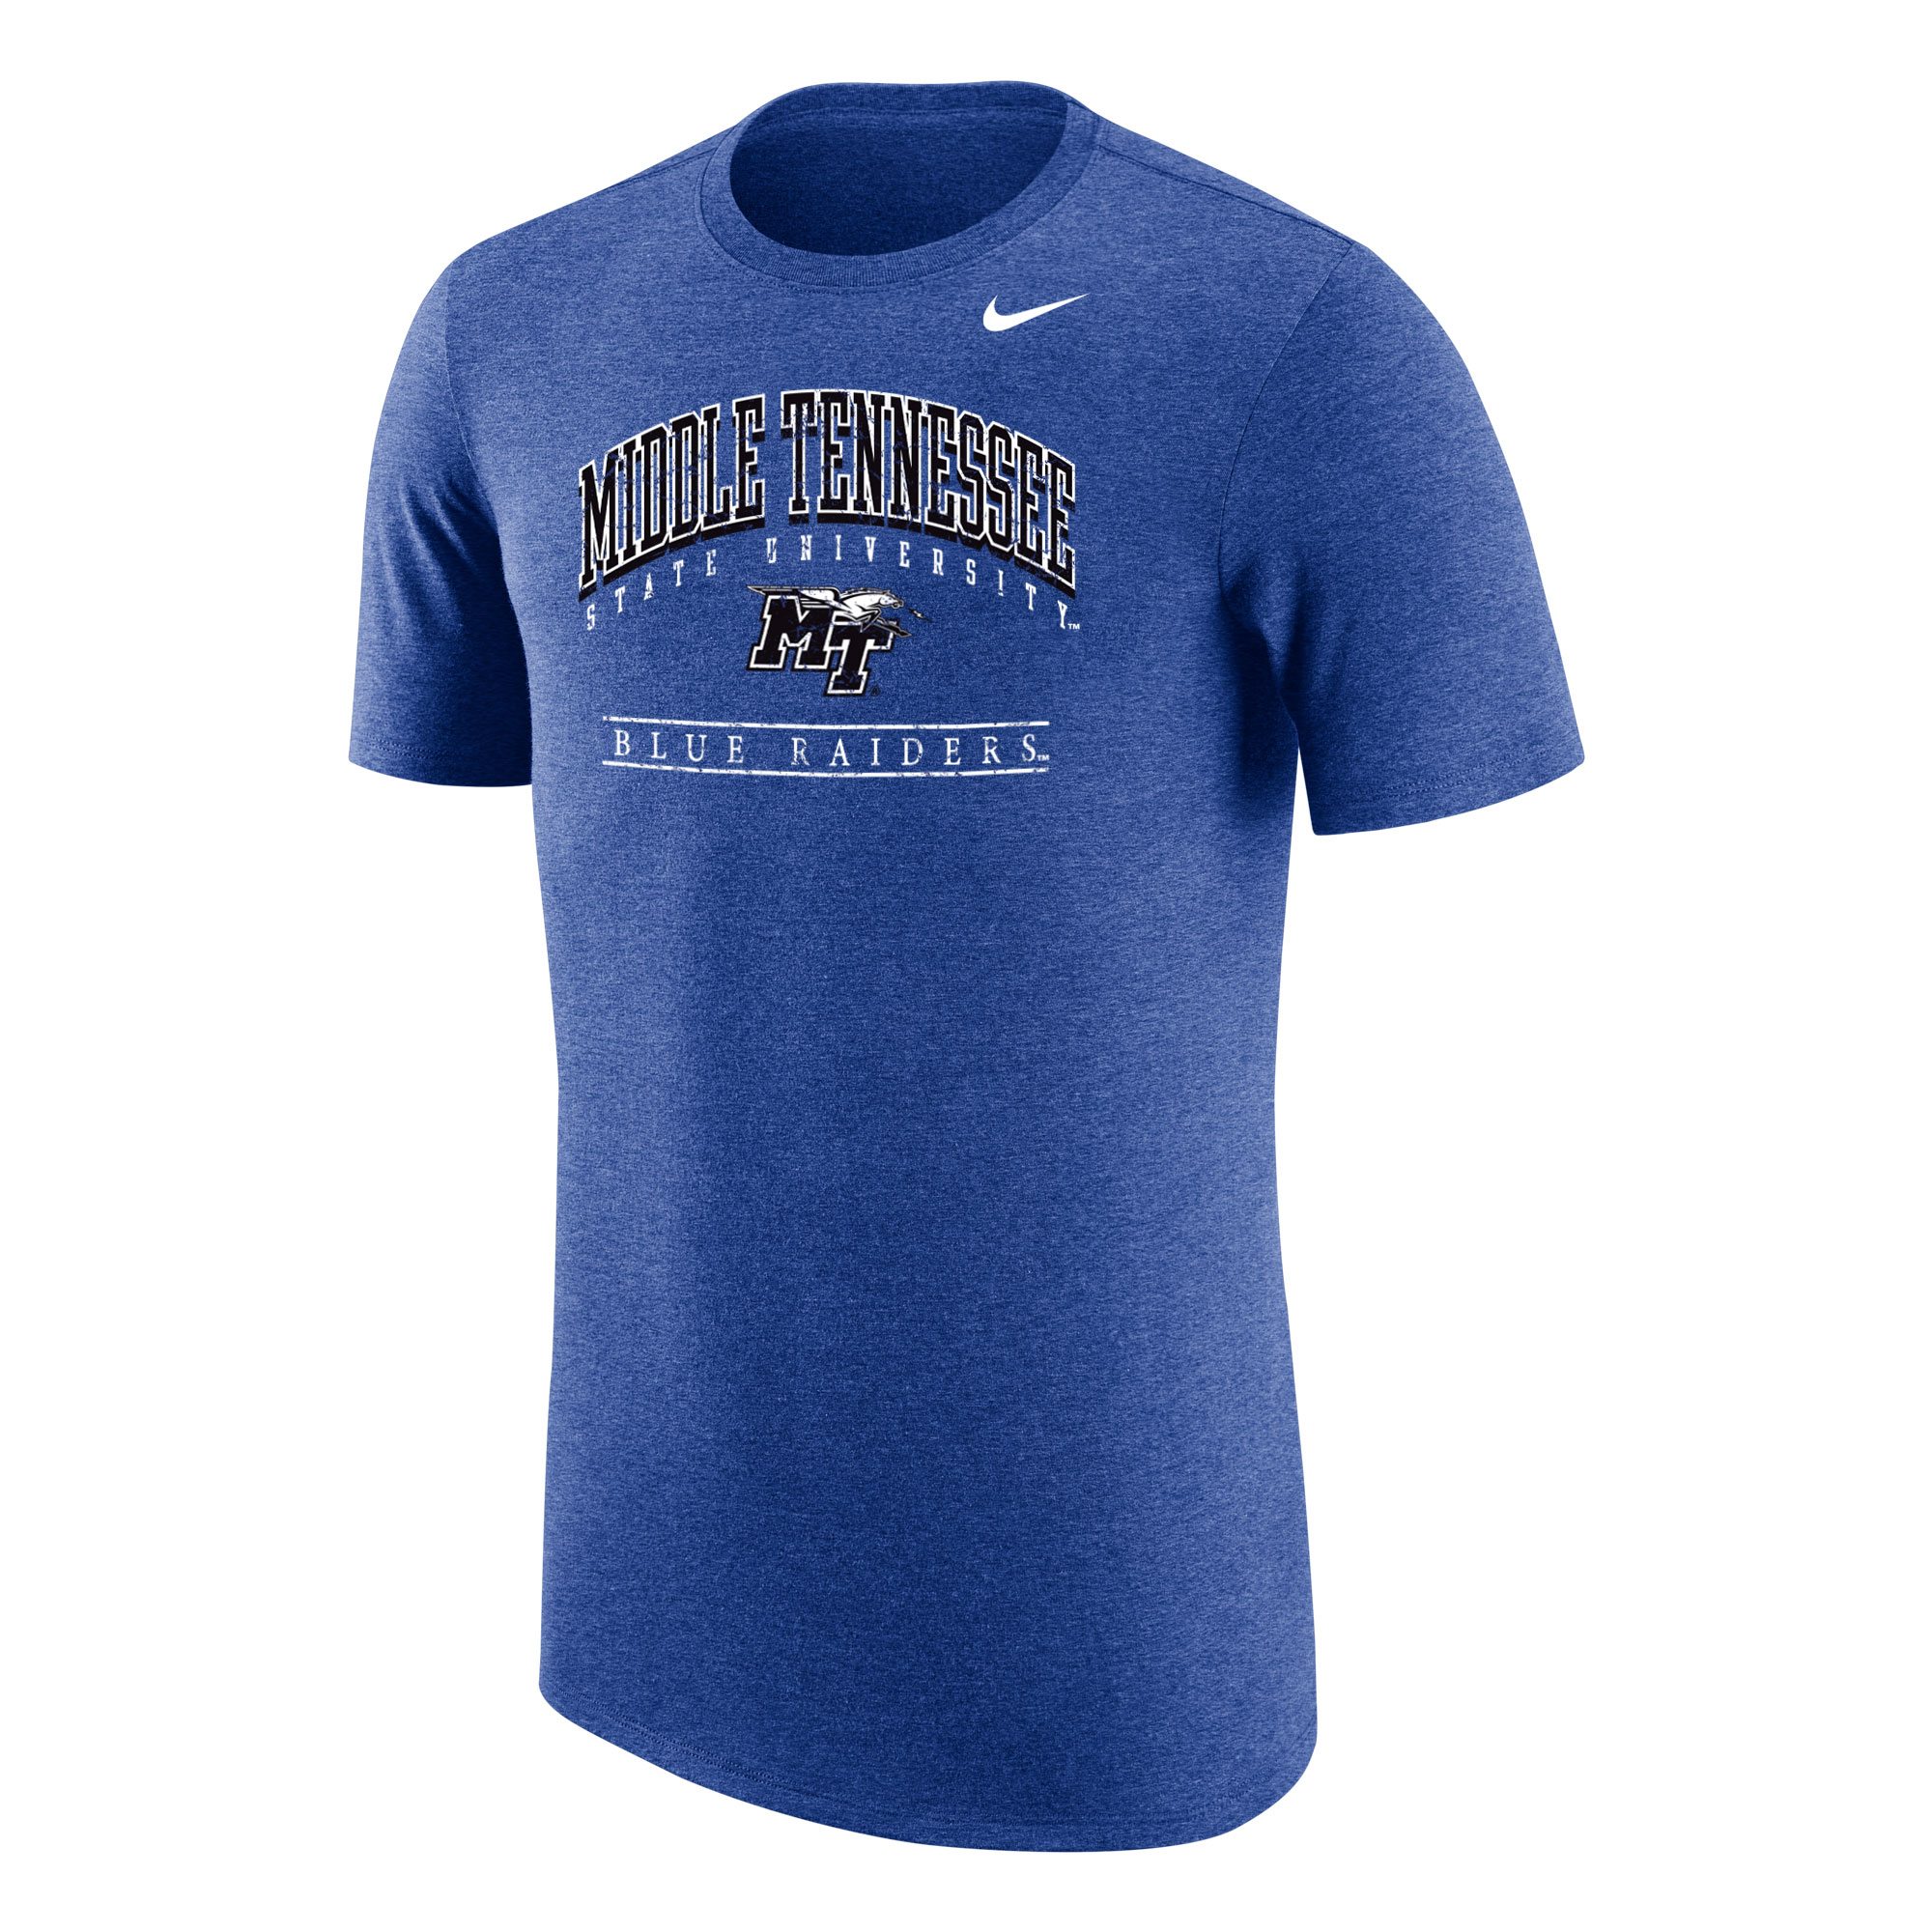 Middle Tennessee State University Nike® TriBlend Shirt